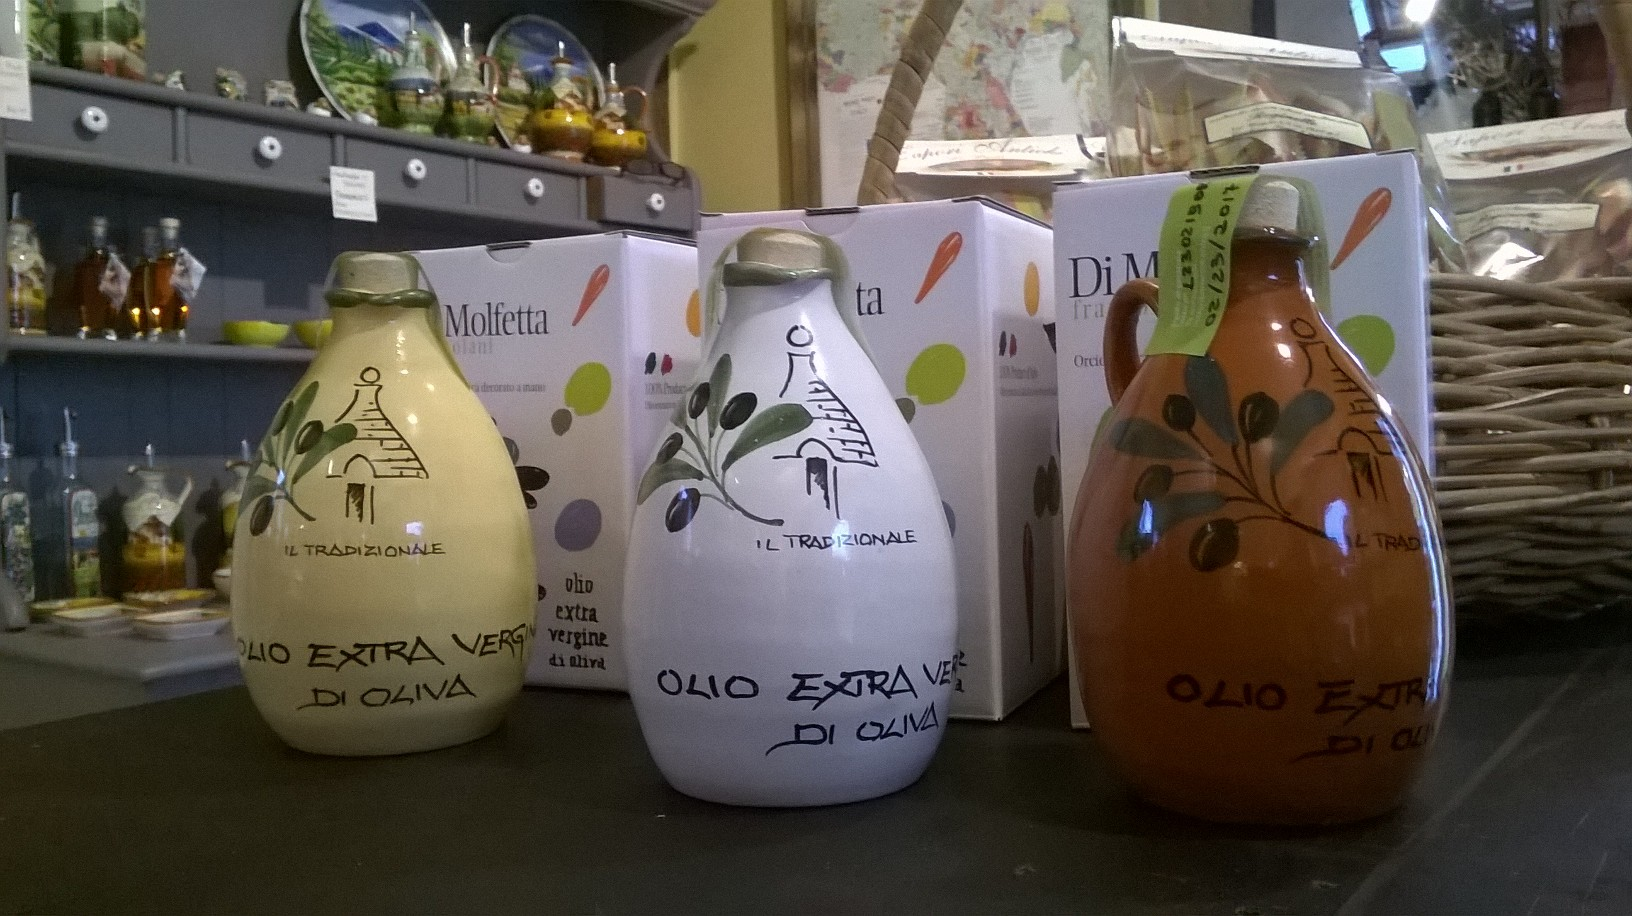 Olive Oil from Puglia in terra-cotta